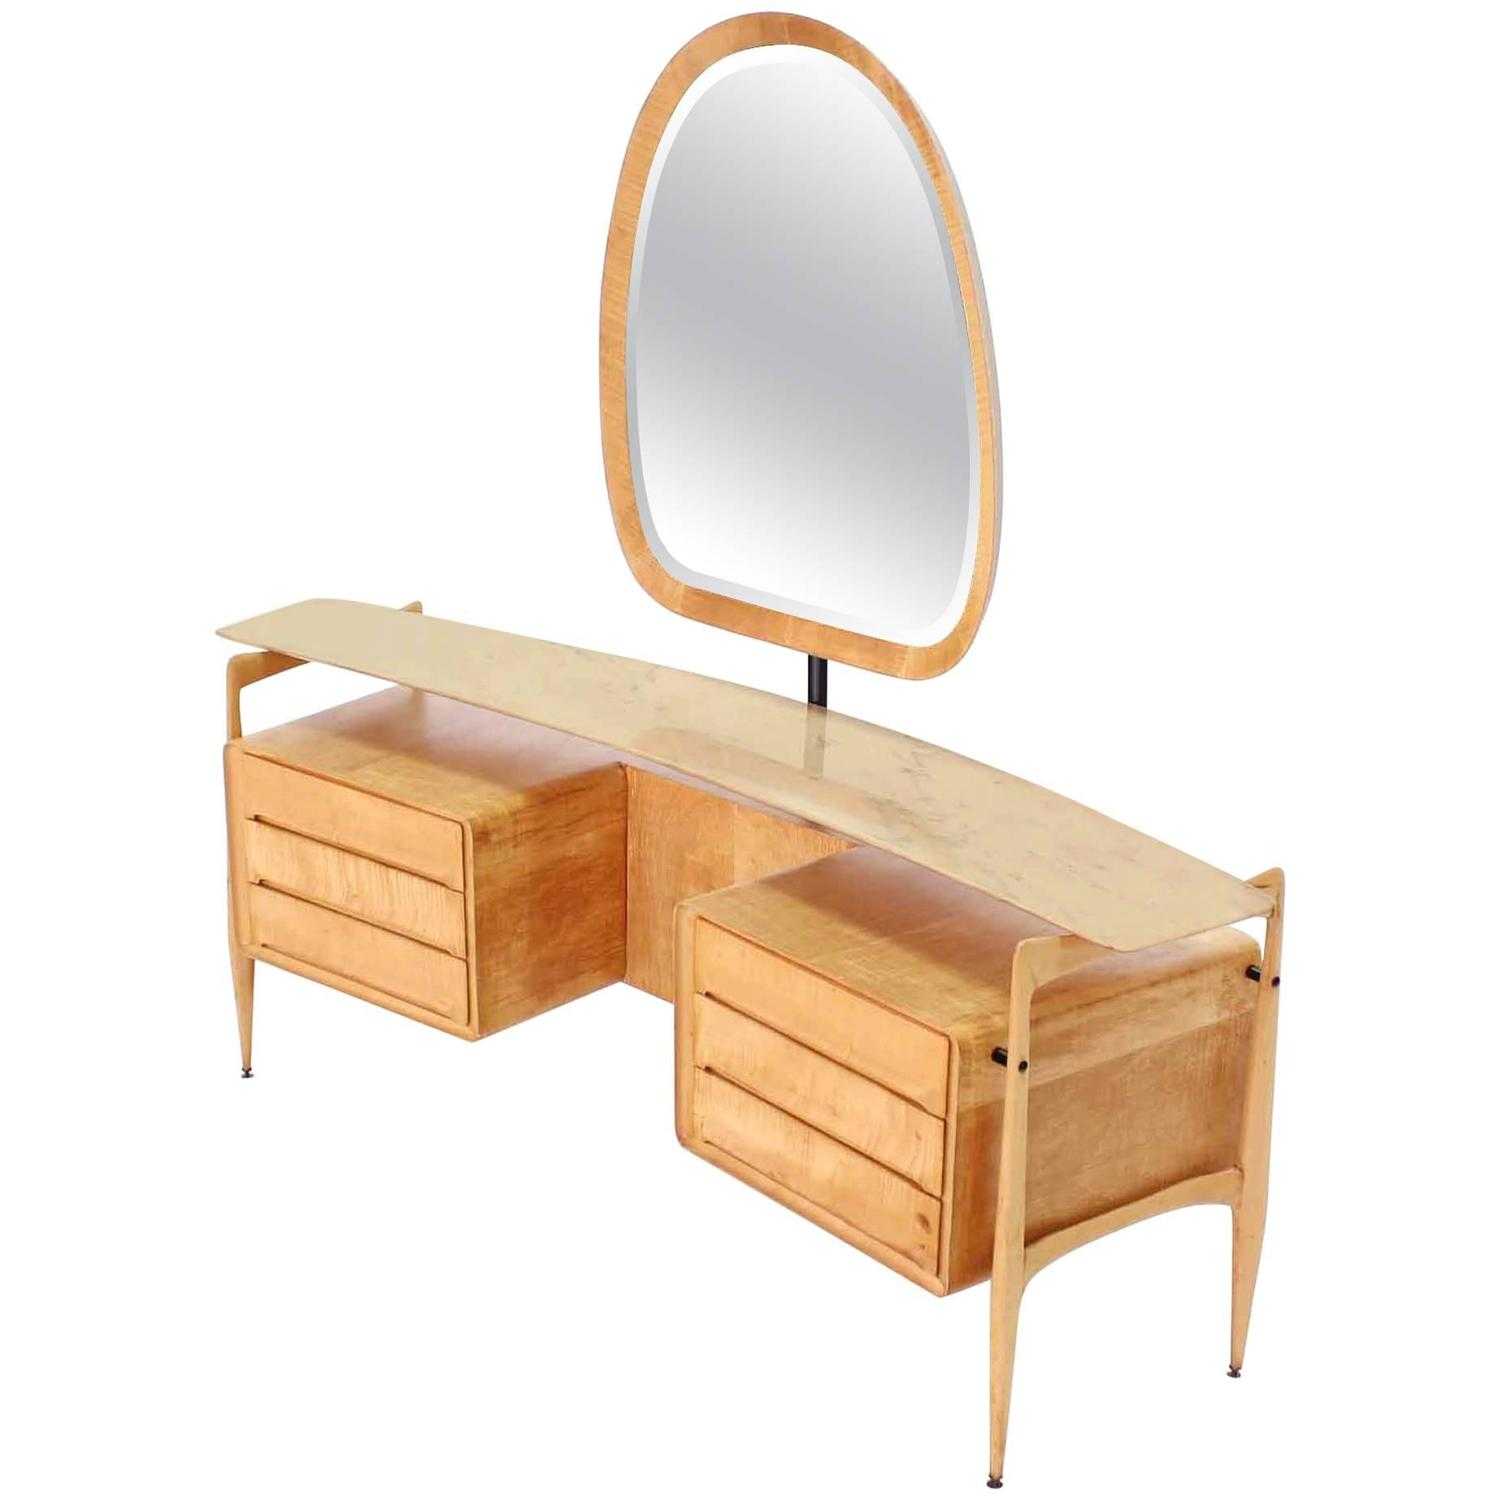 Mid century italian modern vanity dressing table for sale at 1stdibs - Modern bathroom dressing table ...